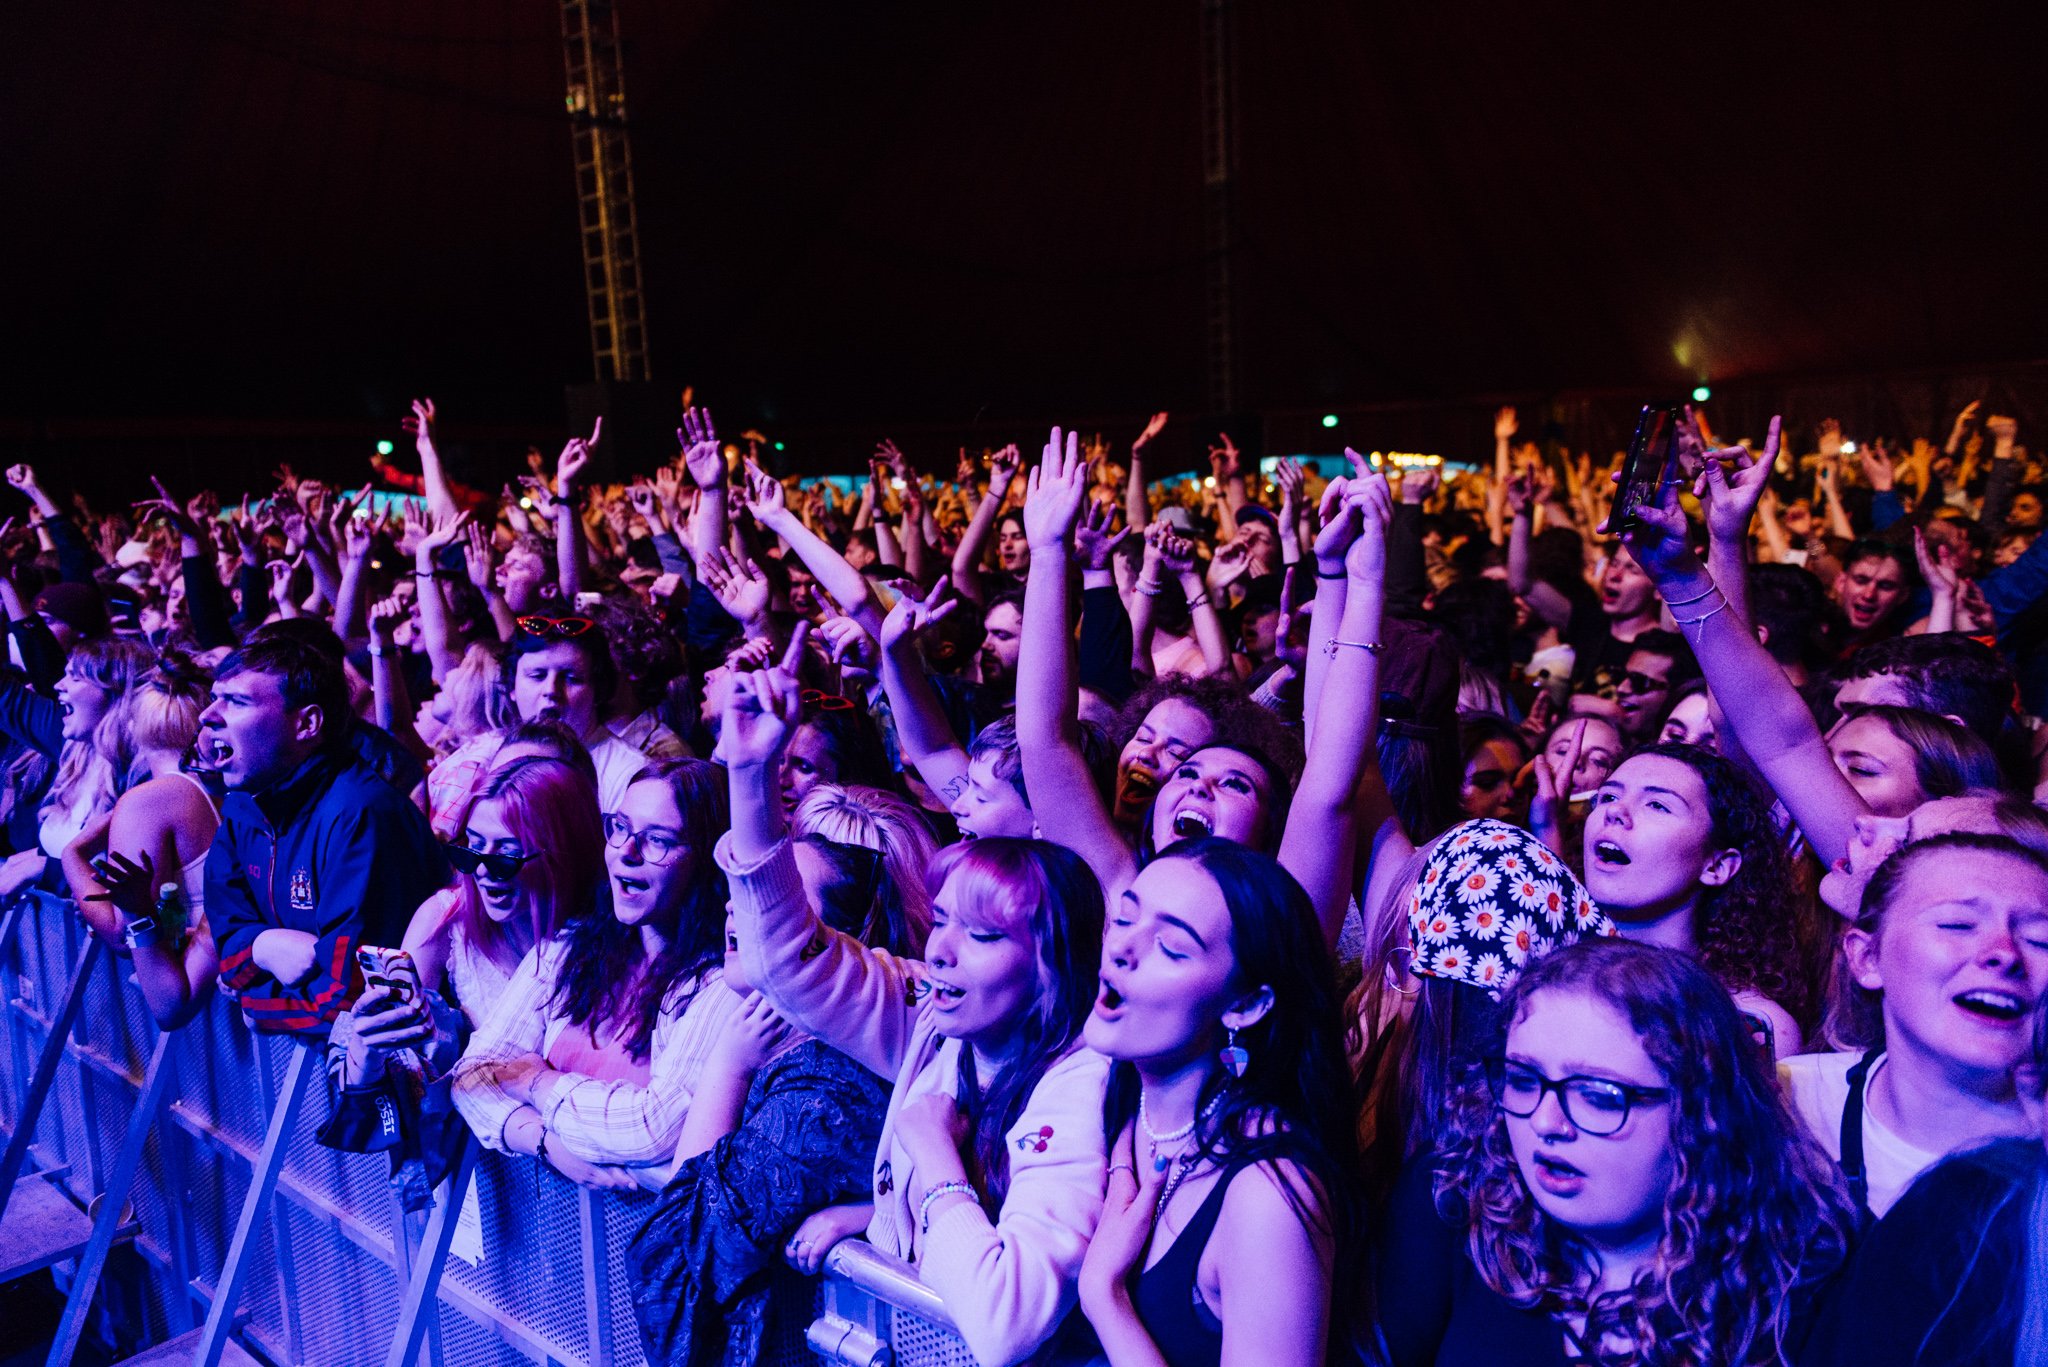 The crowd for Blossoms at the Liverpool Sefton Park COVID pilot gig. Credit: Ben Bentley for NME